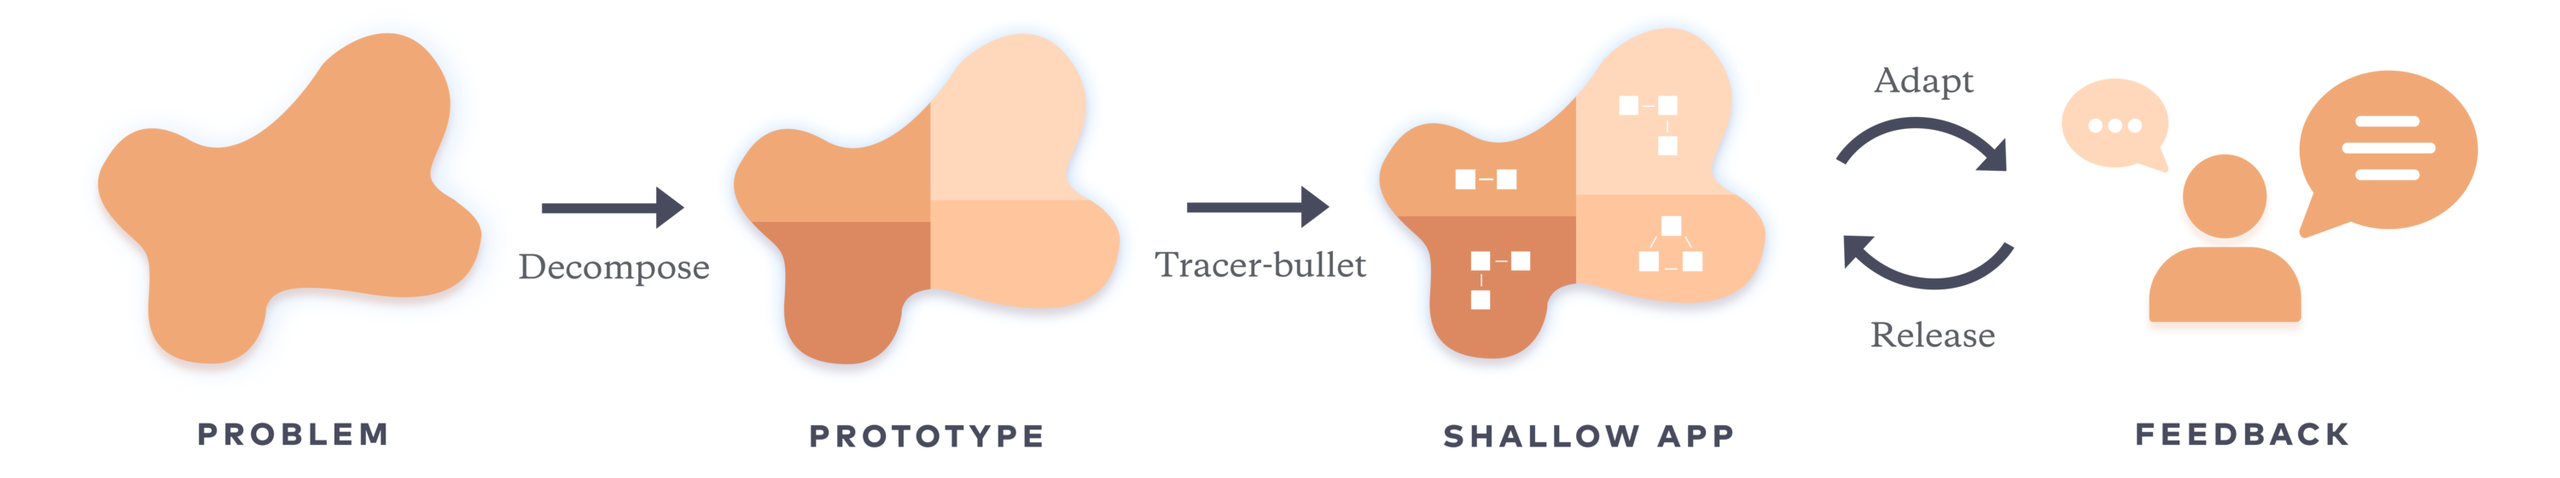 Tracer bullet approach